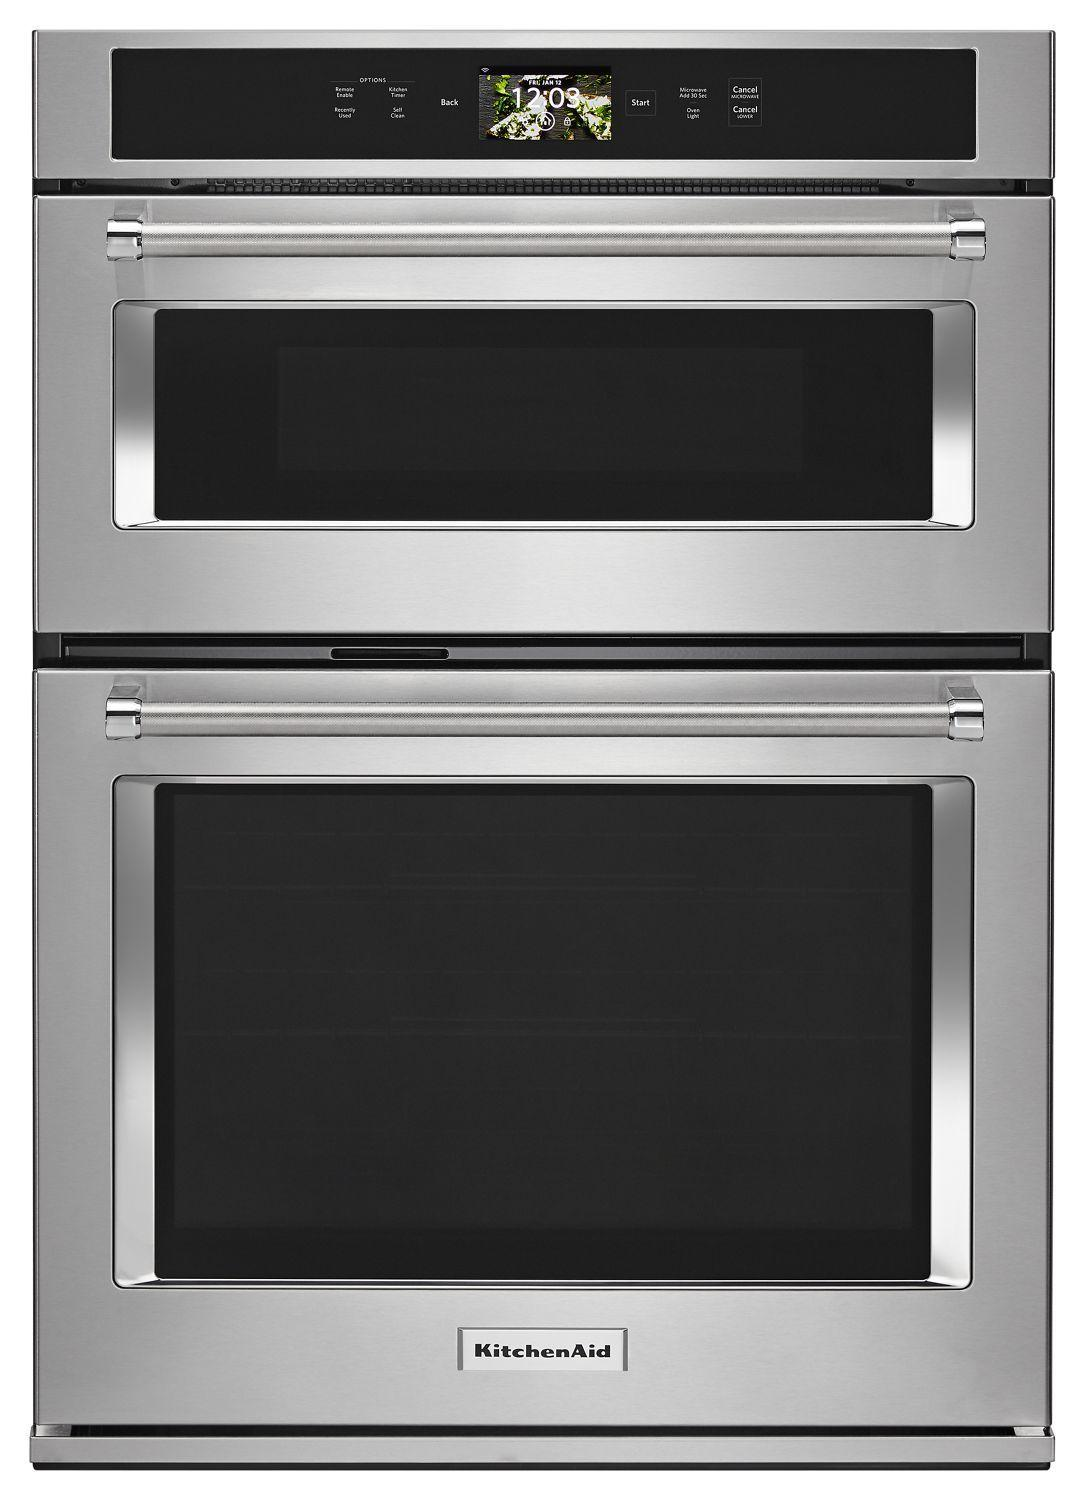 """KitchenaidSmart Oven+ 30"""" Combination Oven With Powered Attachments Stainless Steel"""